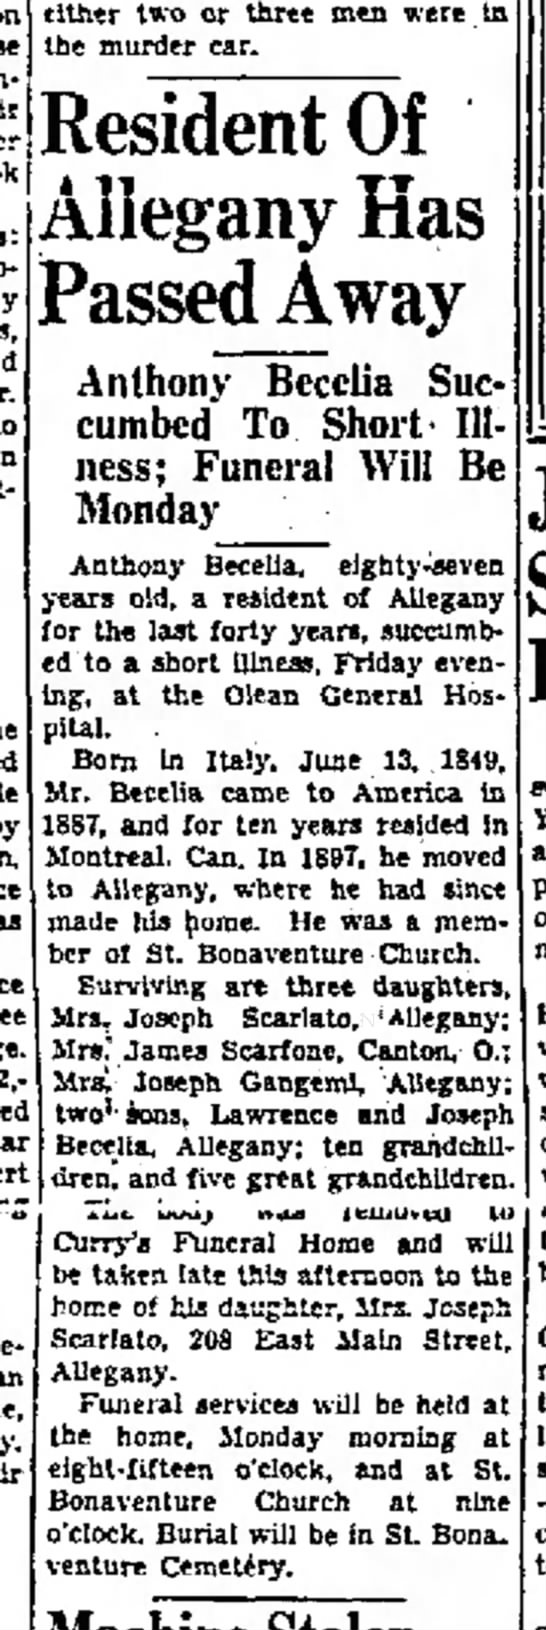 Anthony Becelia Obit 20 Feb 1937 - those planning Book popular to the office...